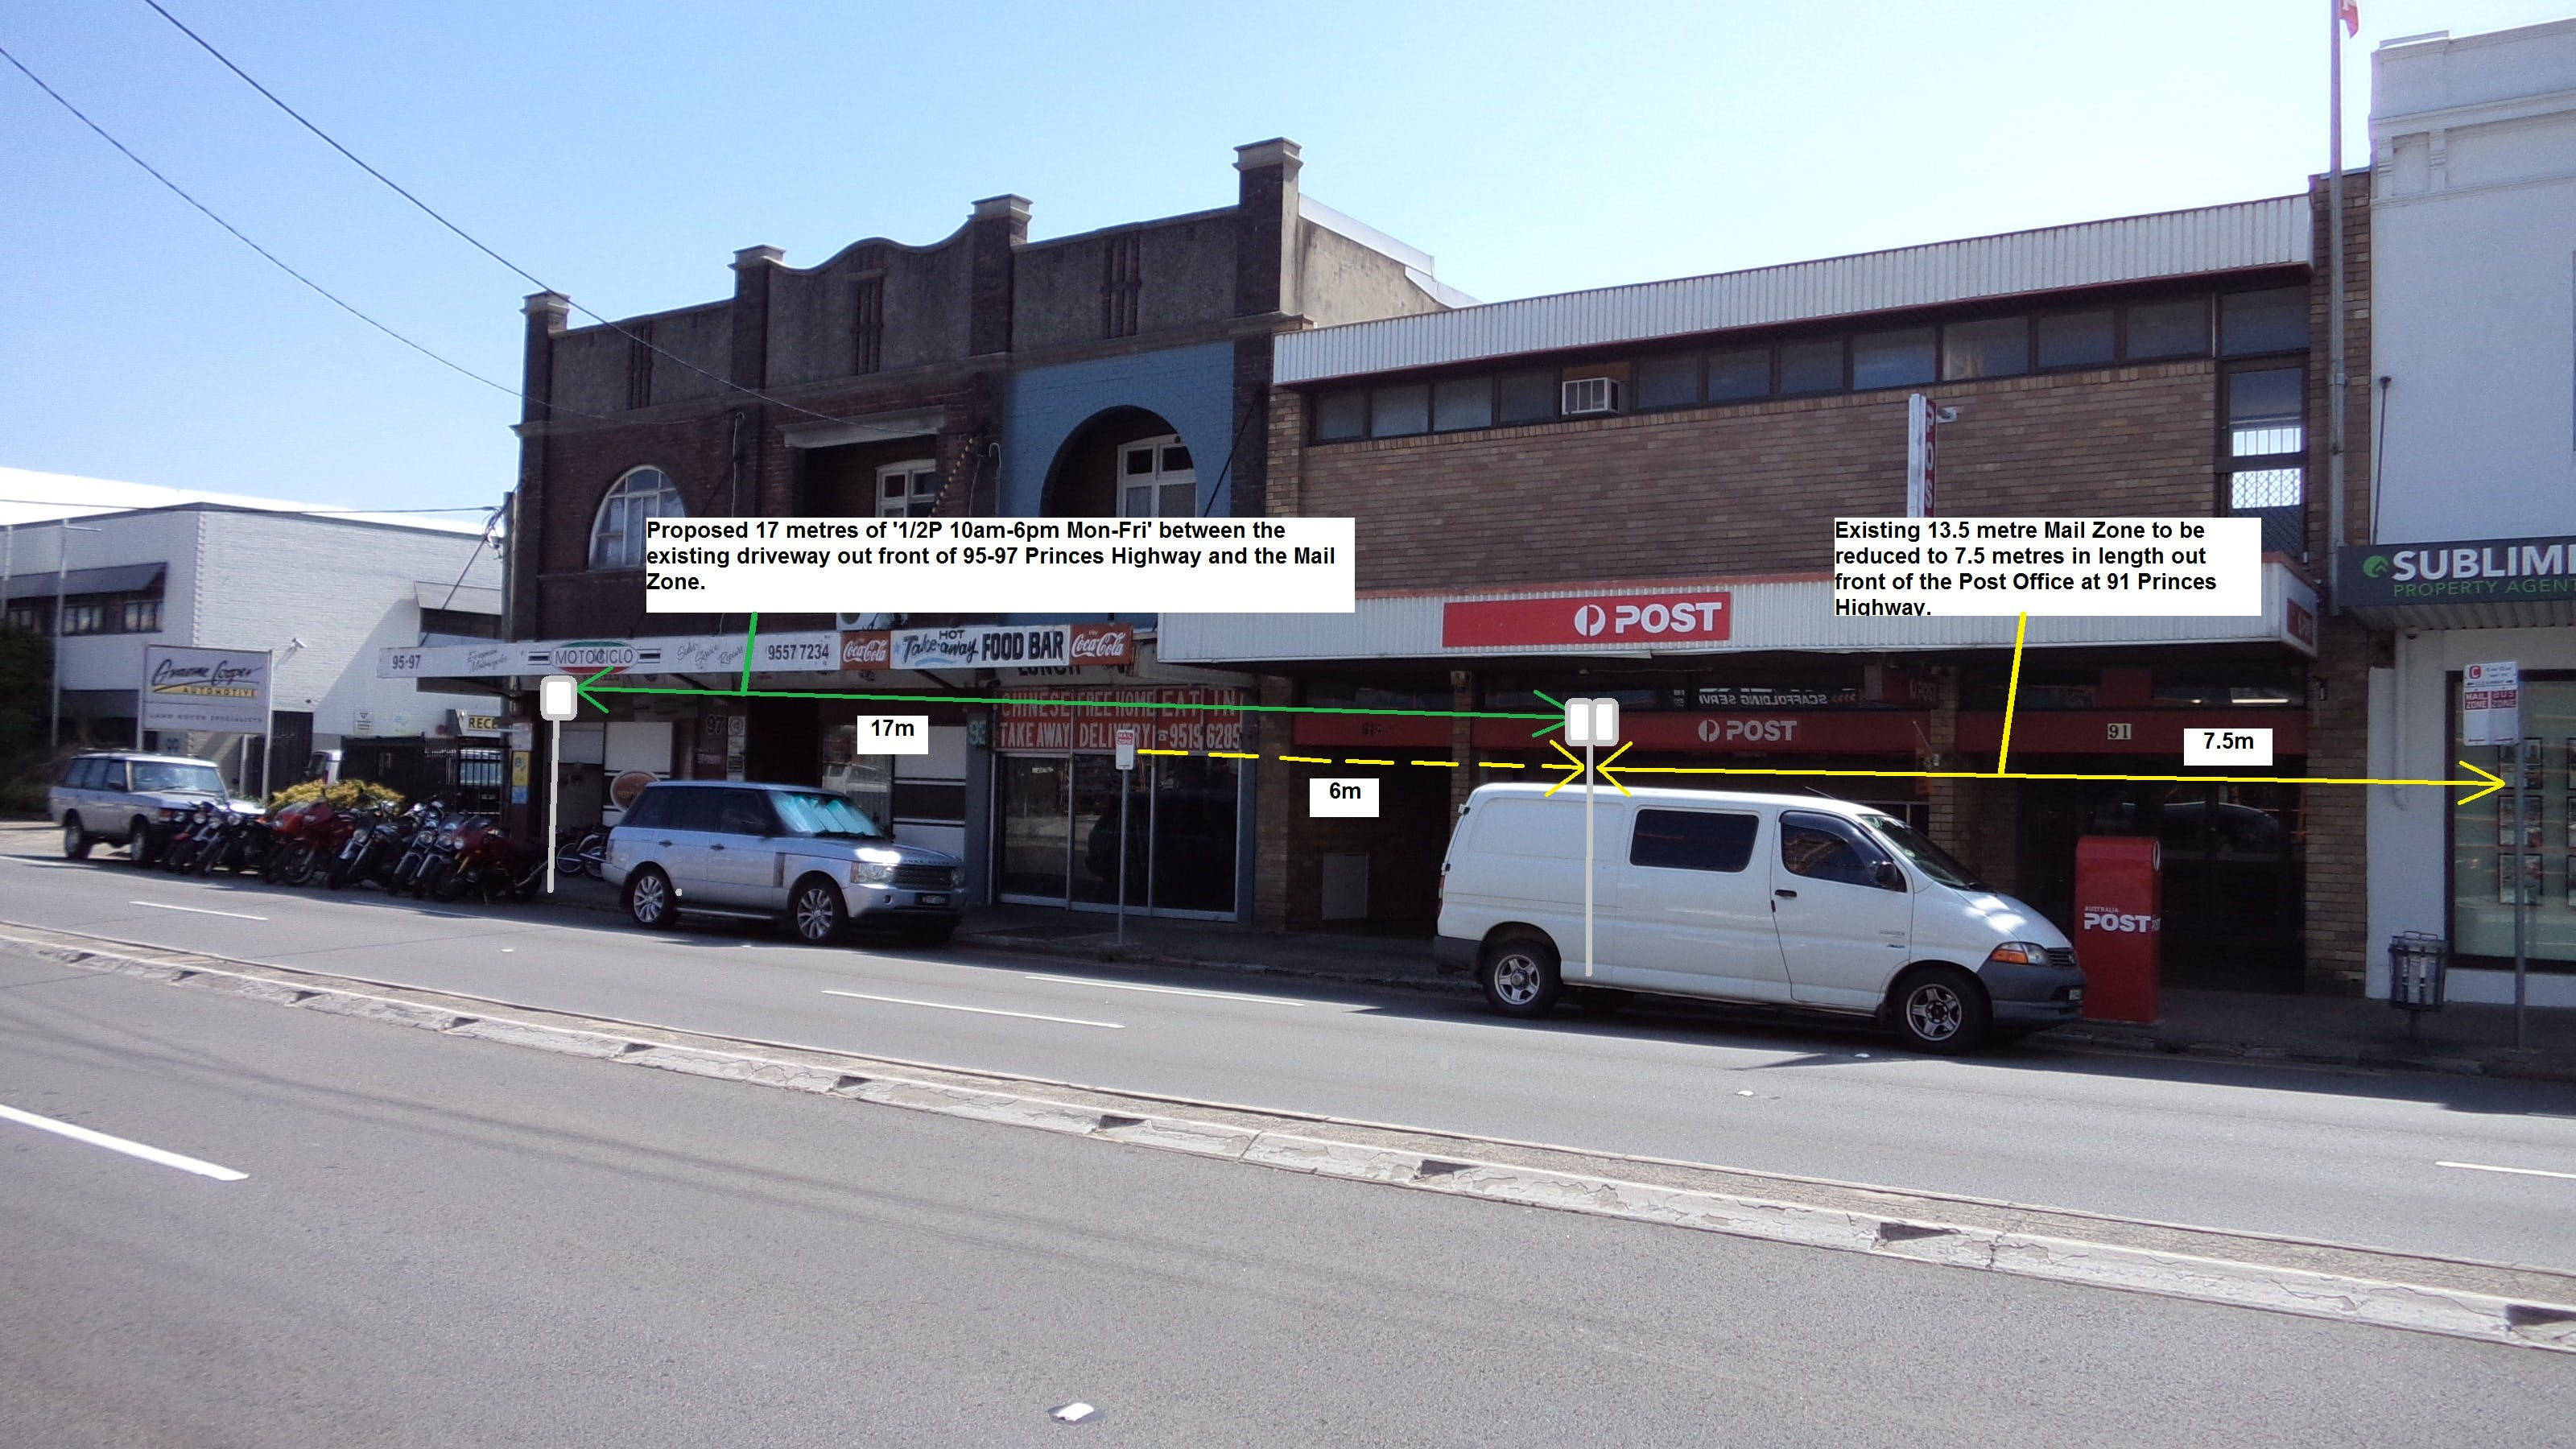 Diagram - Proposed changes to parking conditions at Princes Highway